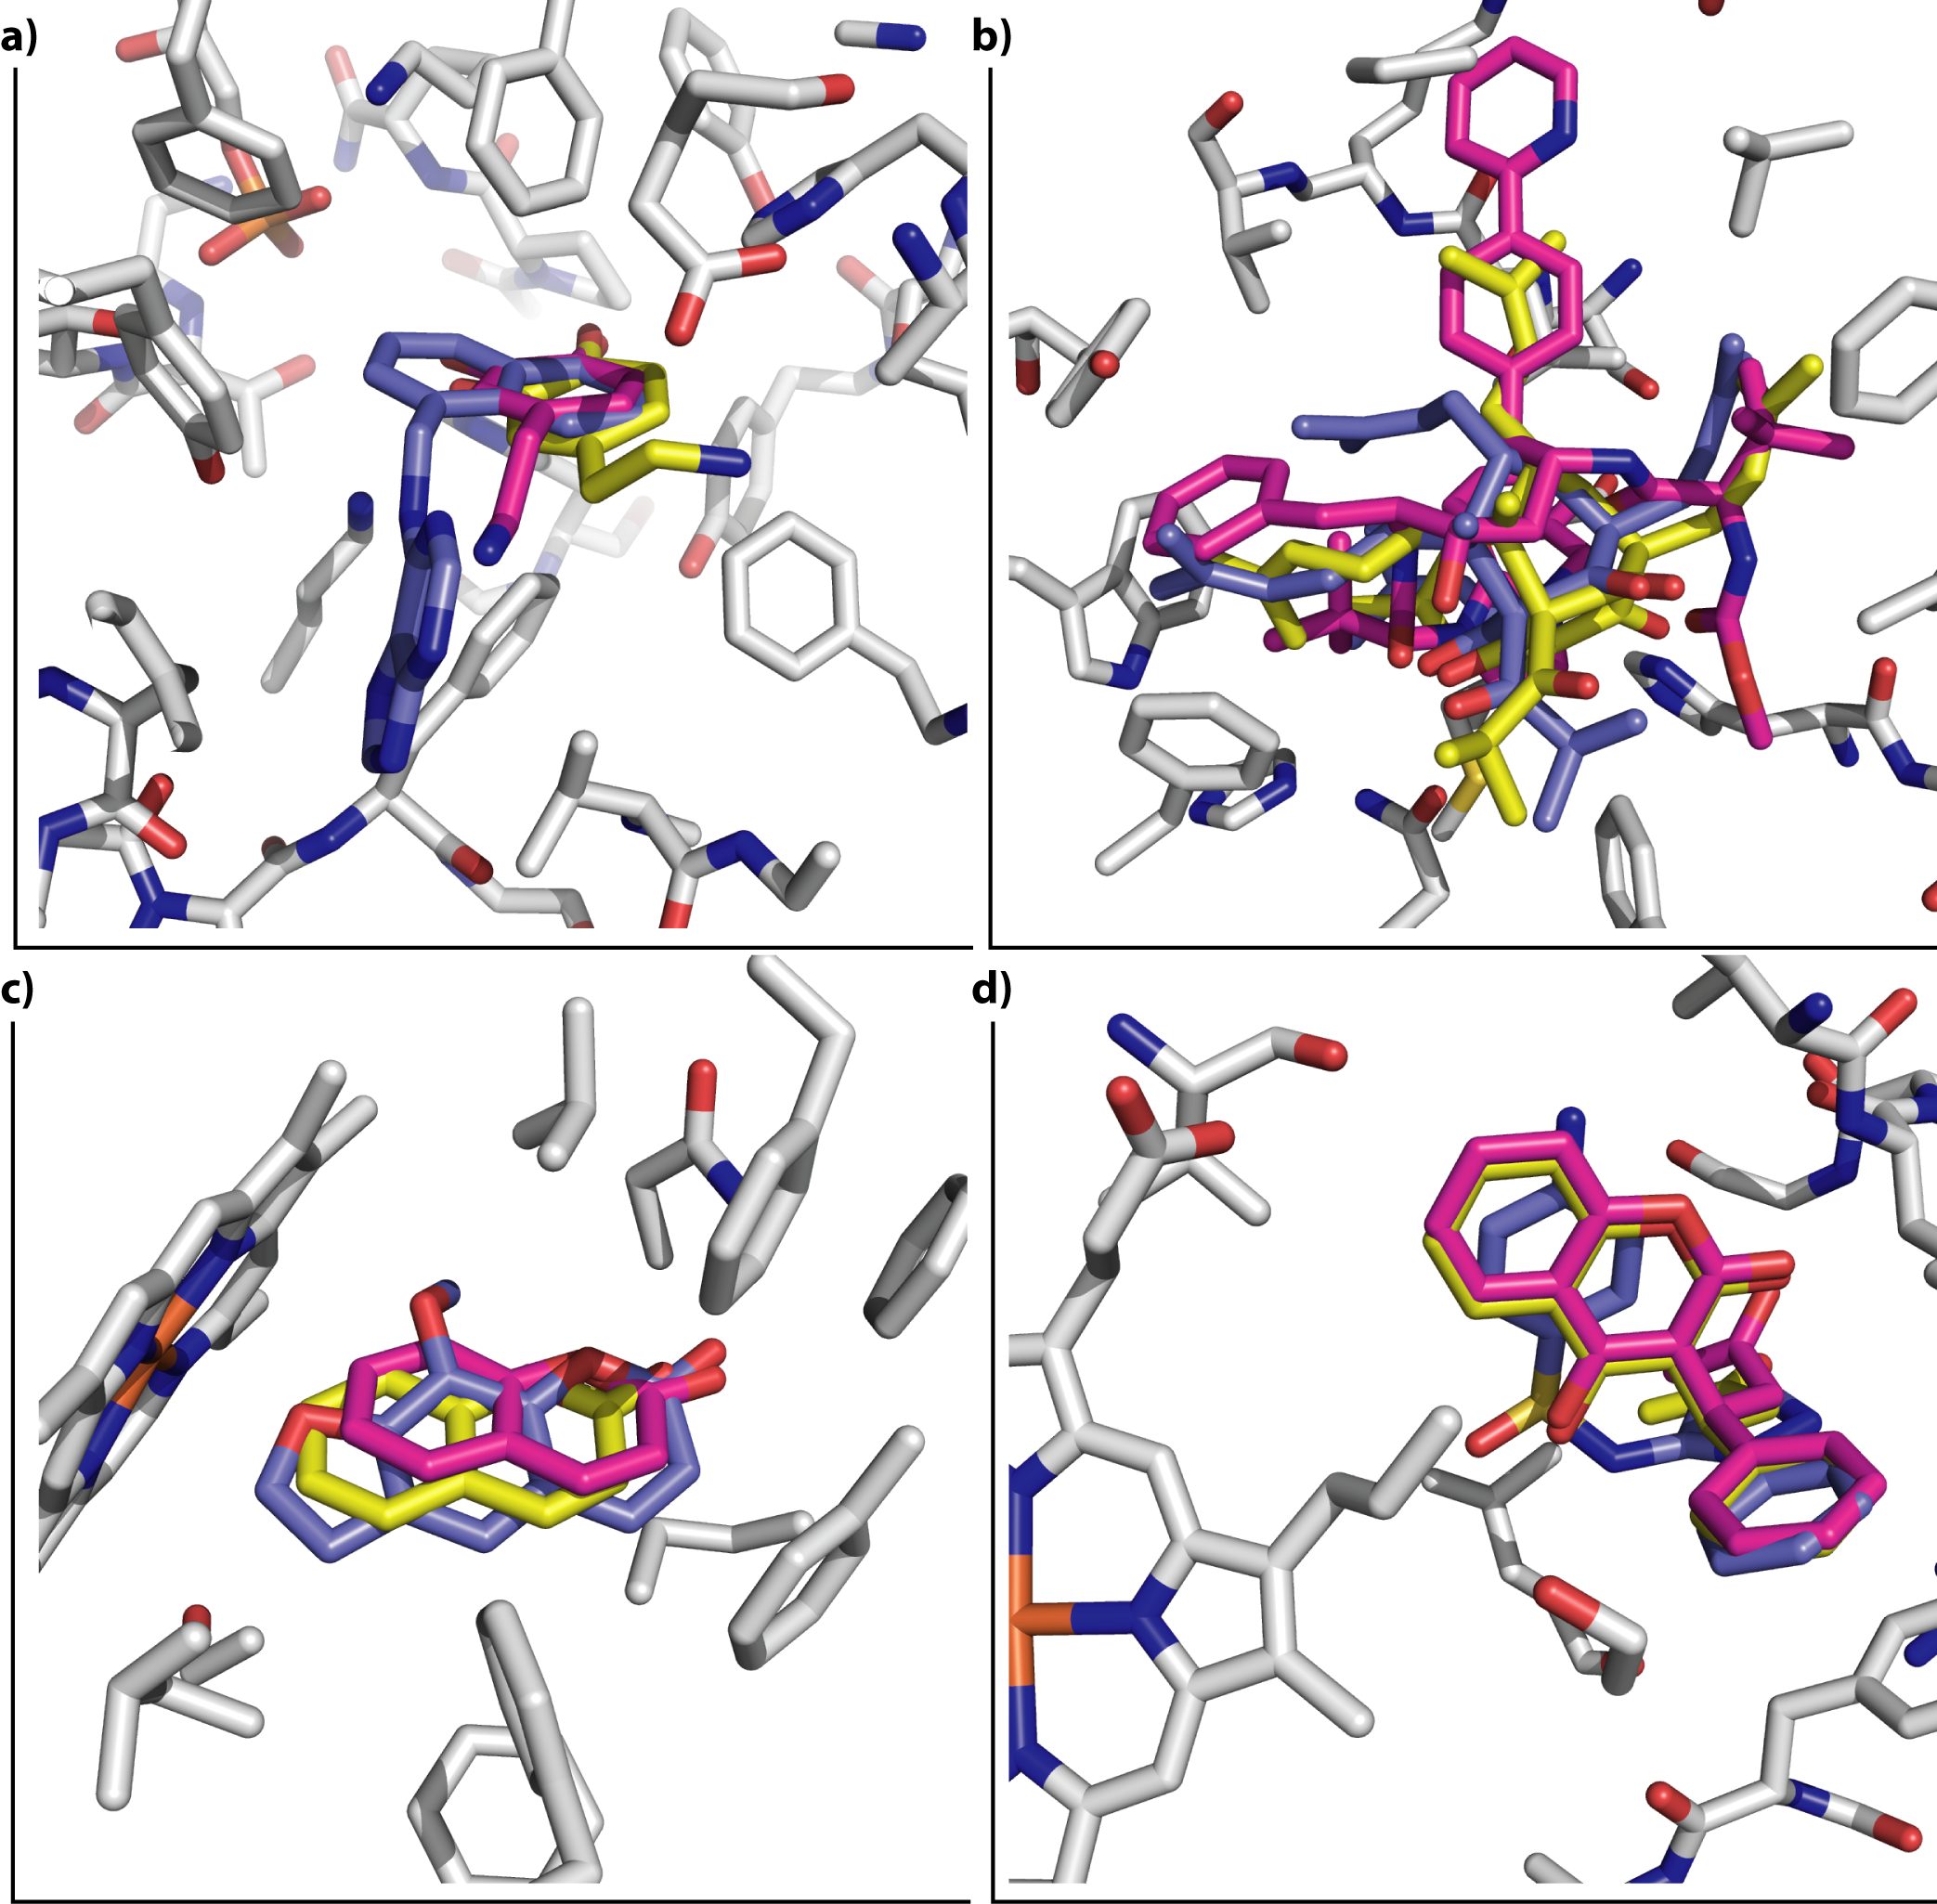 A.T. Garcia-Sosa, S. Sild, K. Takkis, U. Maran, Combined Approach using Ligand Efficiency, Cross-Docking, and Anti-Target Hits for Wild-Type and Drug-Resistant Y181C HIV-1 Reverse Transcriptase, Journal of Chemical Information and Modeling, J. Chem. Inf. Model. 2011, Vol. 51, Iss. 10, 2595-2611 docking binding mode x-ray crystal structure sulfotransferase SULT pregnane-x-receptor PXR cytochrome P450 2a6 2c9 3a4 CYP cross-docking cognate ligand inhibitor